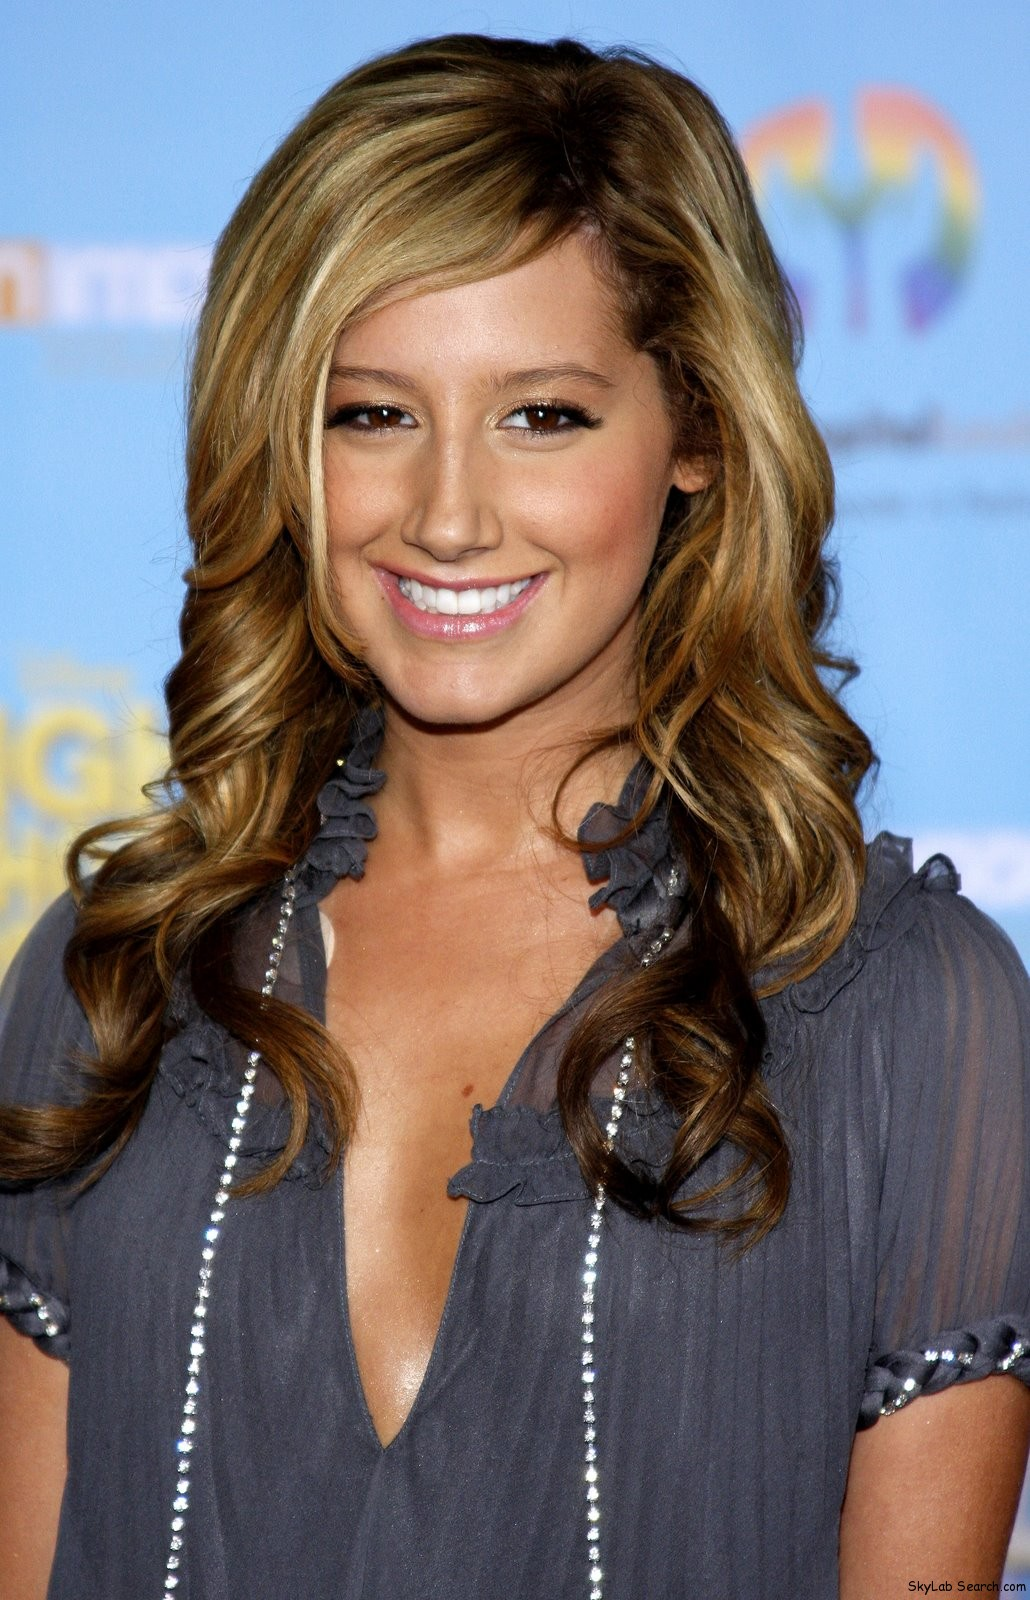 Popular Create Hairs 2012 Hairstyles For Long Hair Has Endless